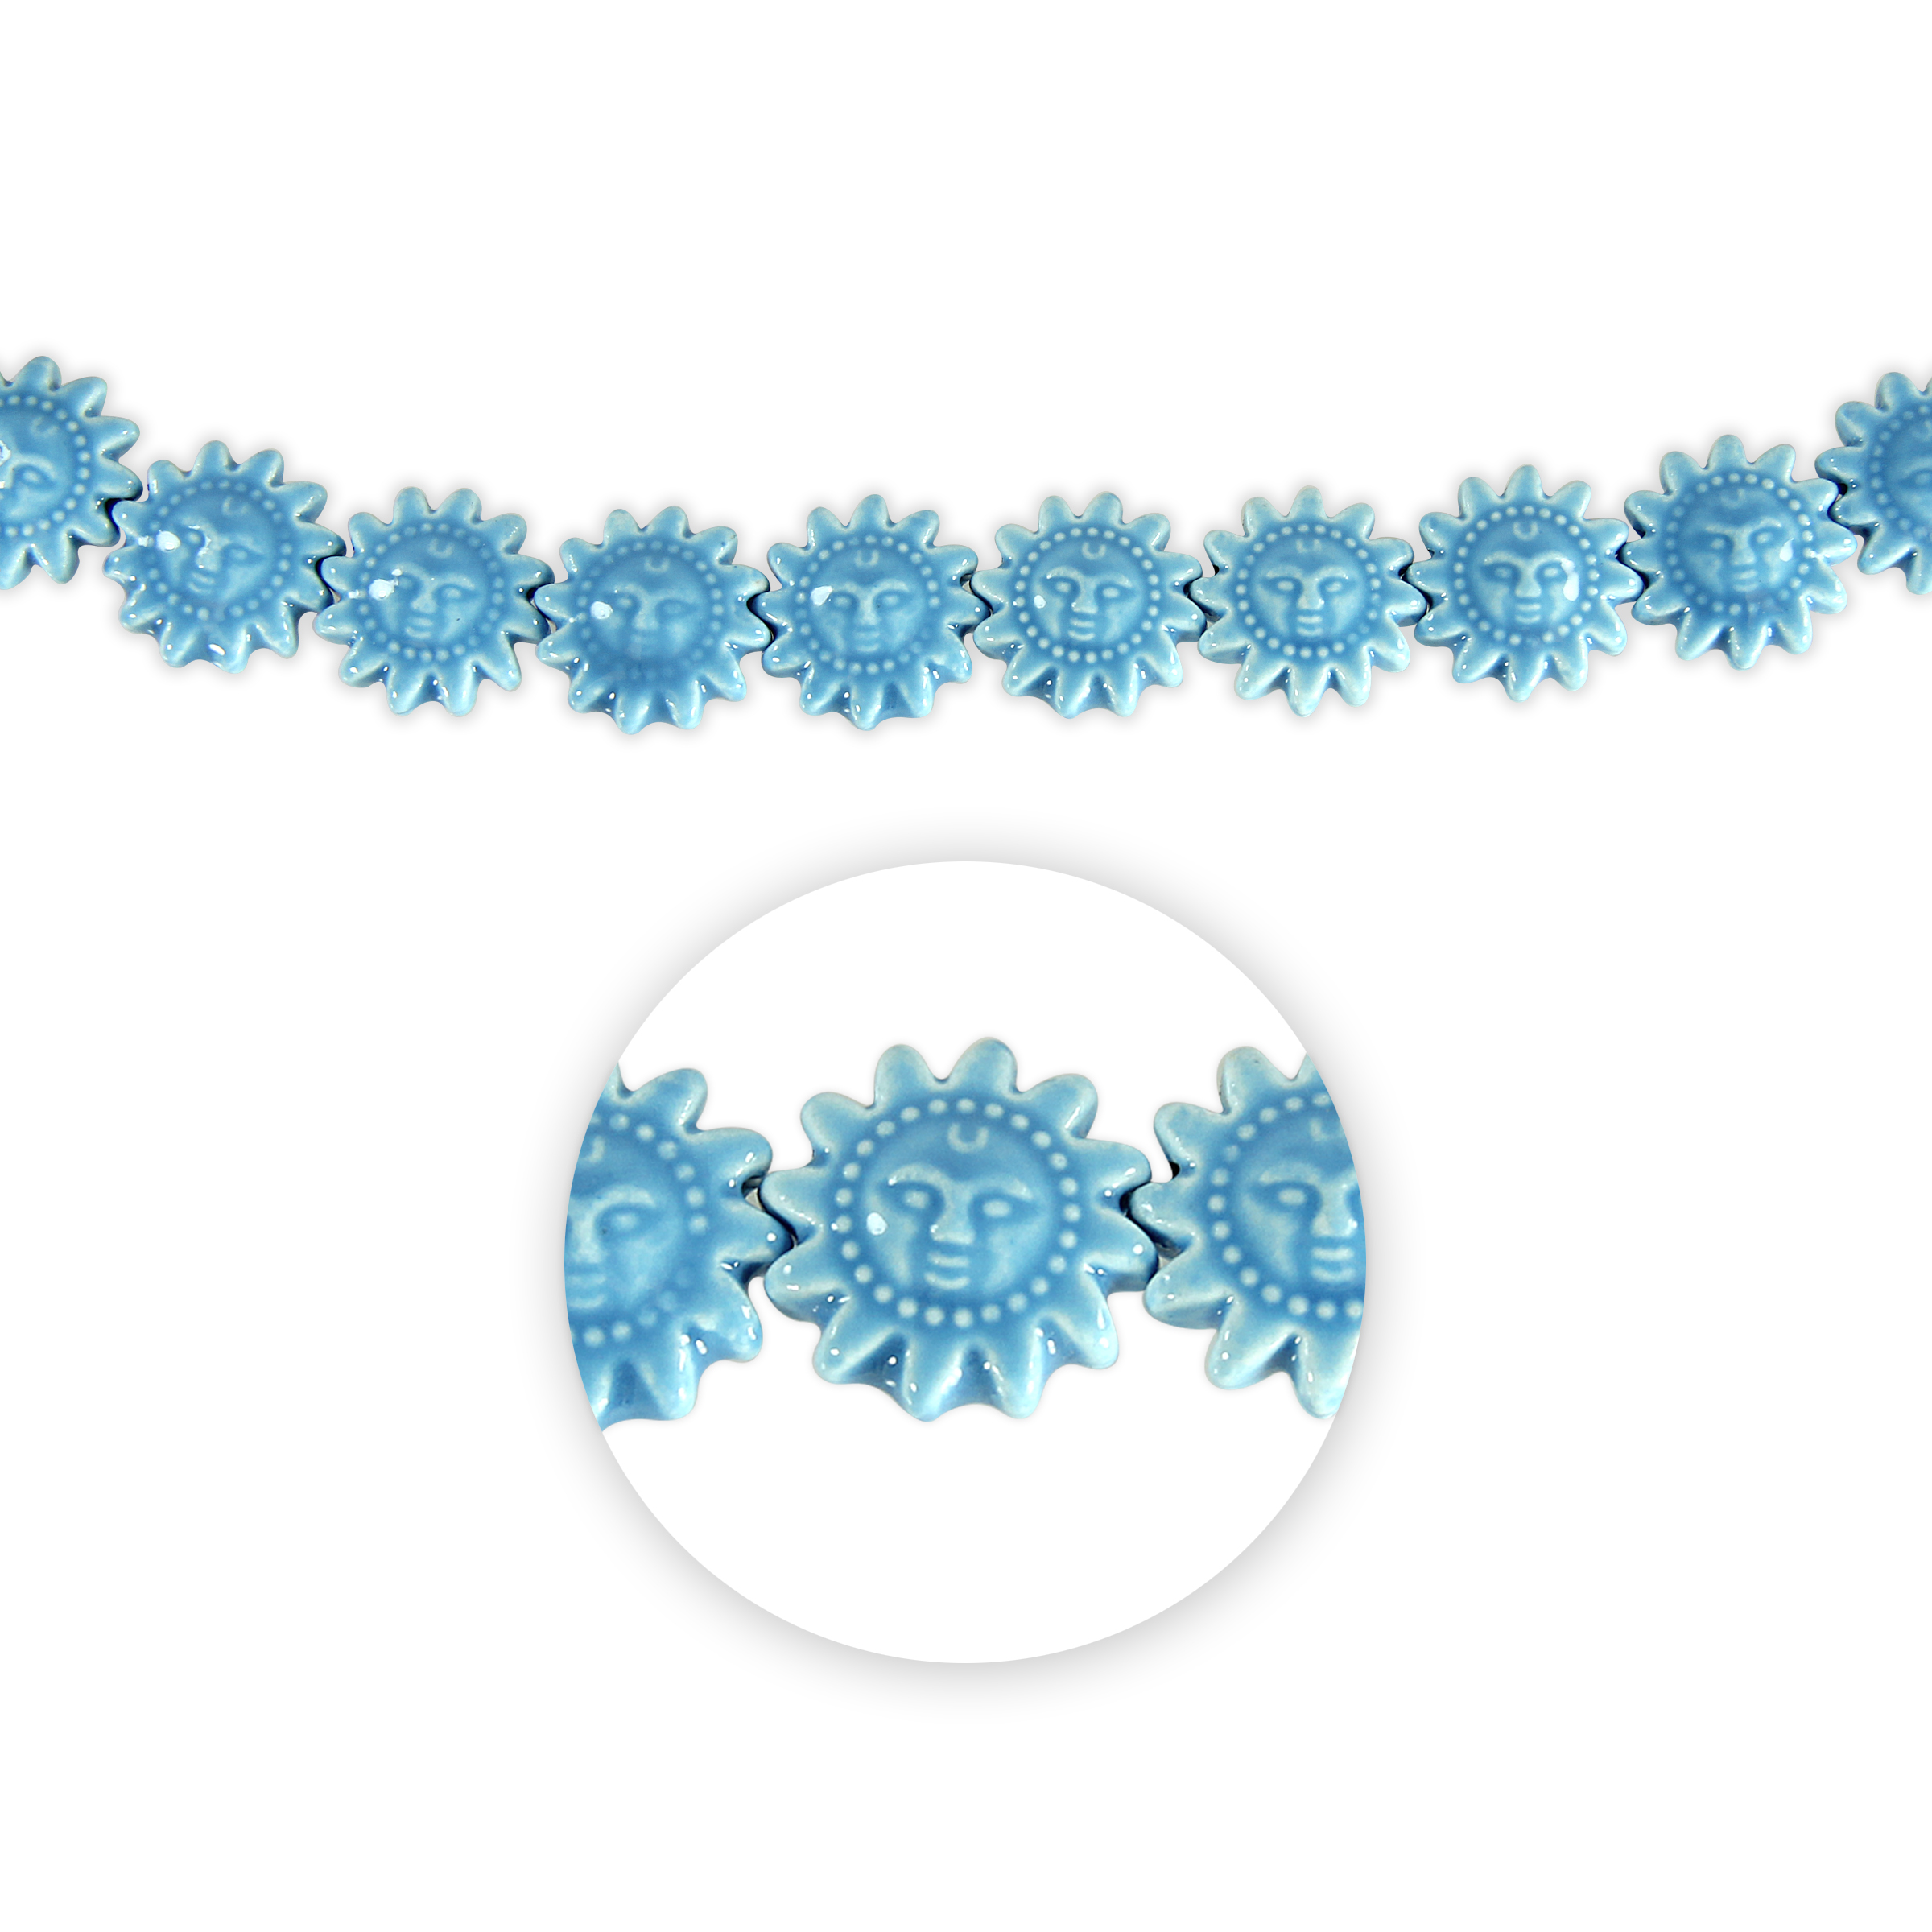 Blue Moon Beads Strand 7\u0022 Ceramic Sun, Light Blue